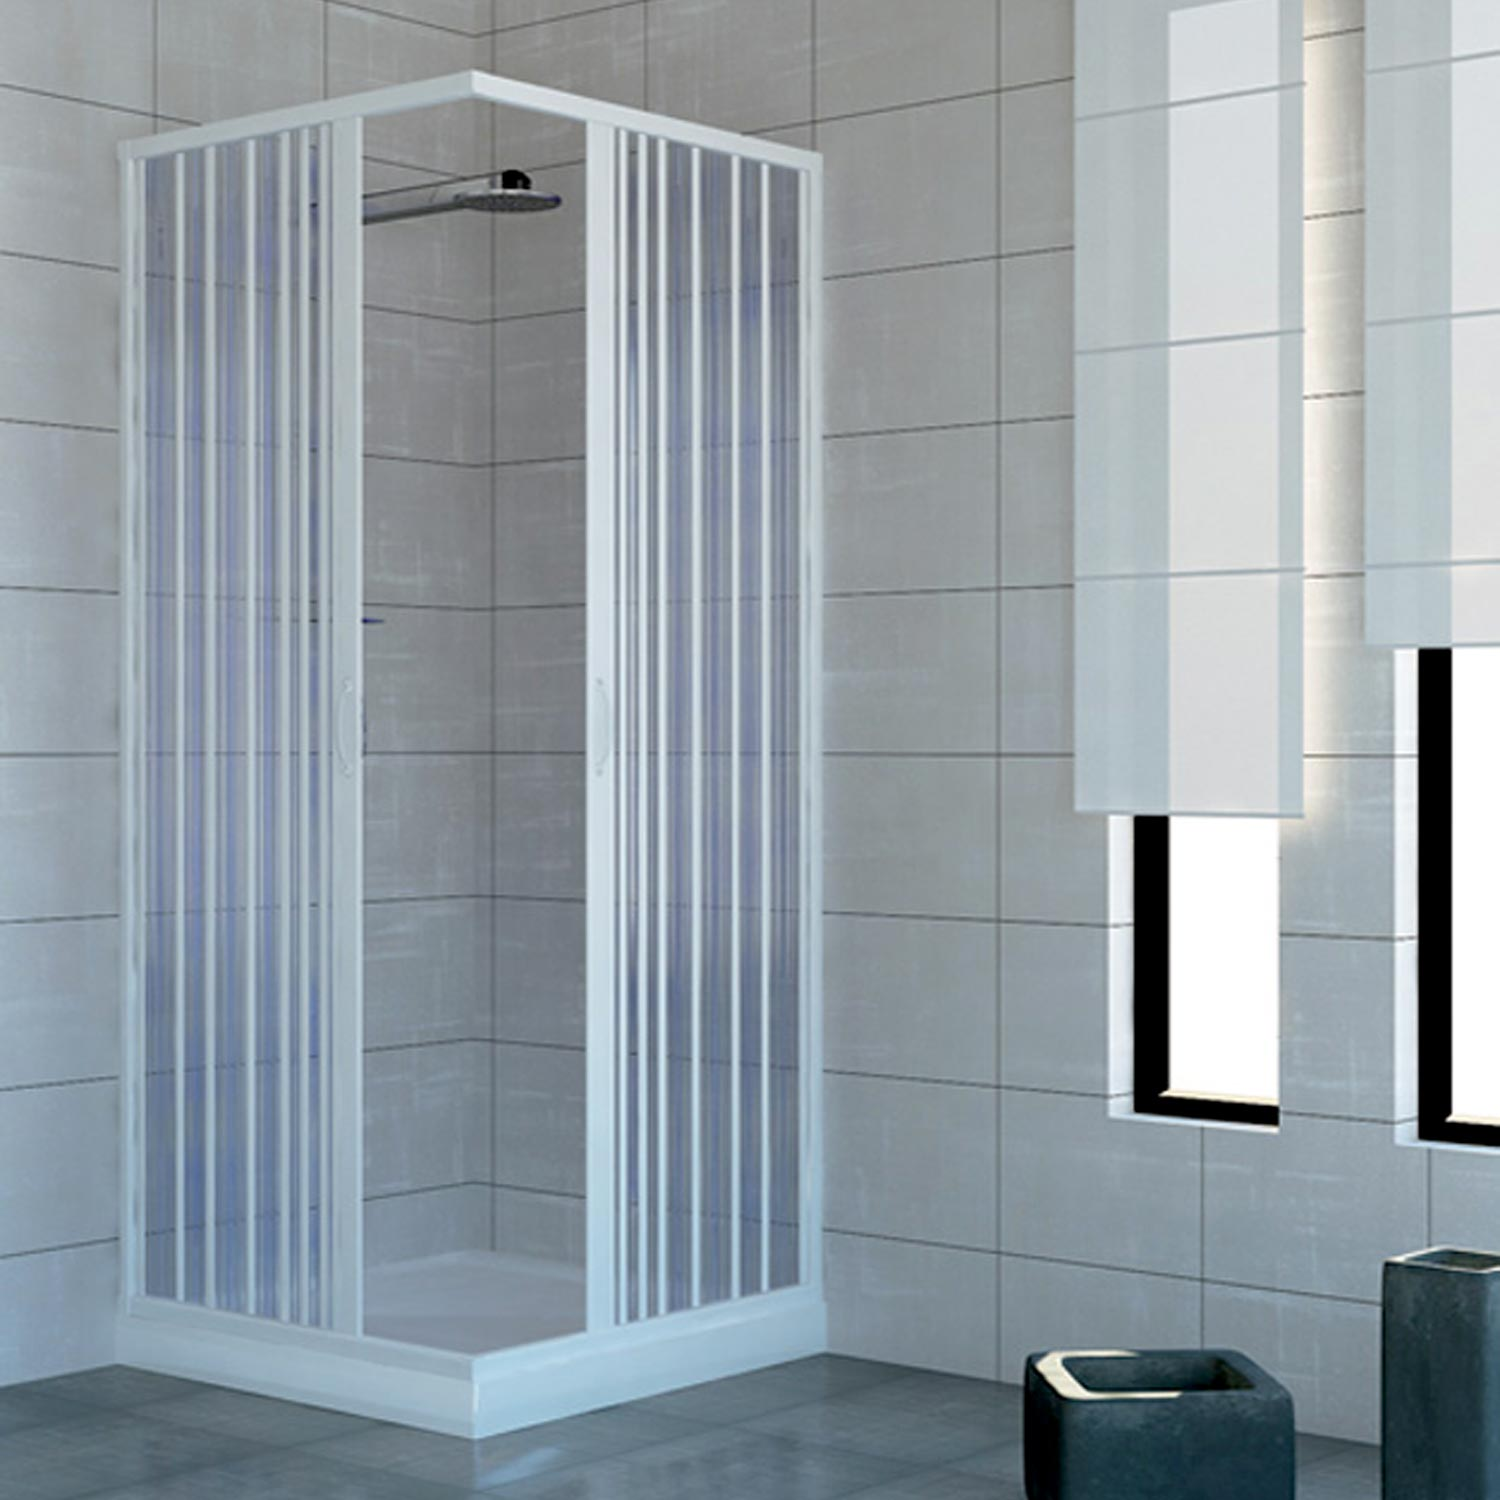 shower enclosure walk in quadrant cubicle plastic pvc folding doors 14 colours ebay. Black Bedroom Furniture Sets. Home Design Ideas